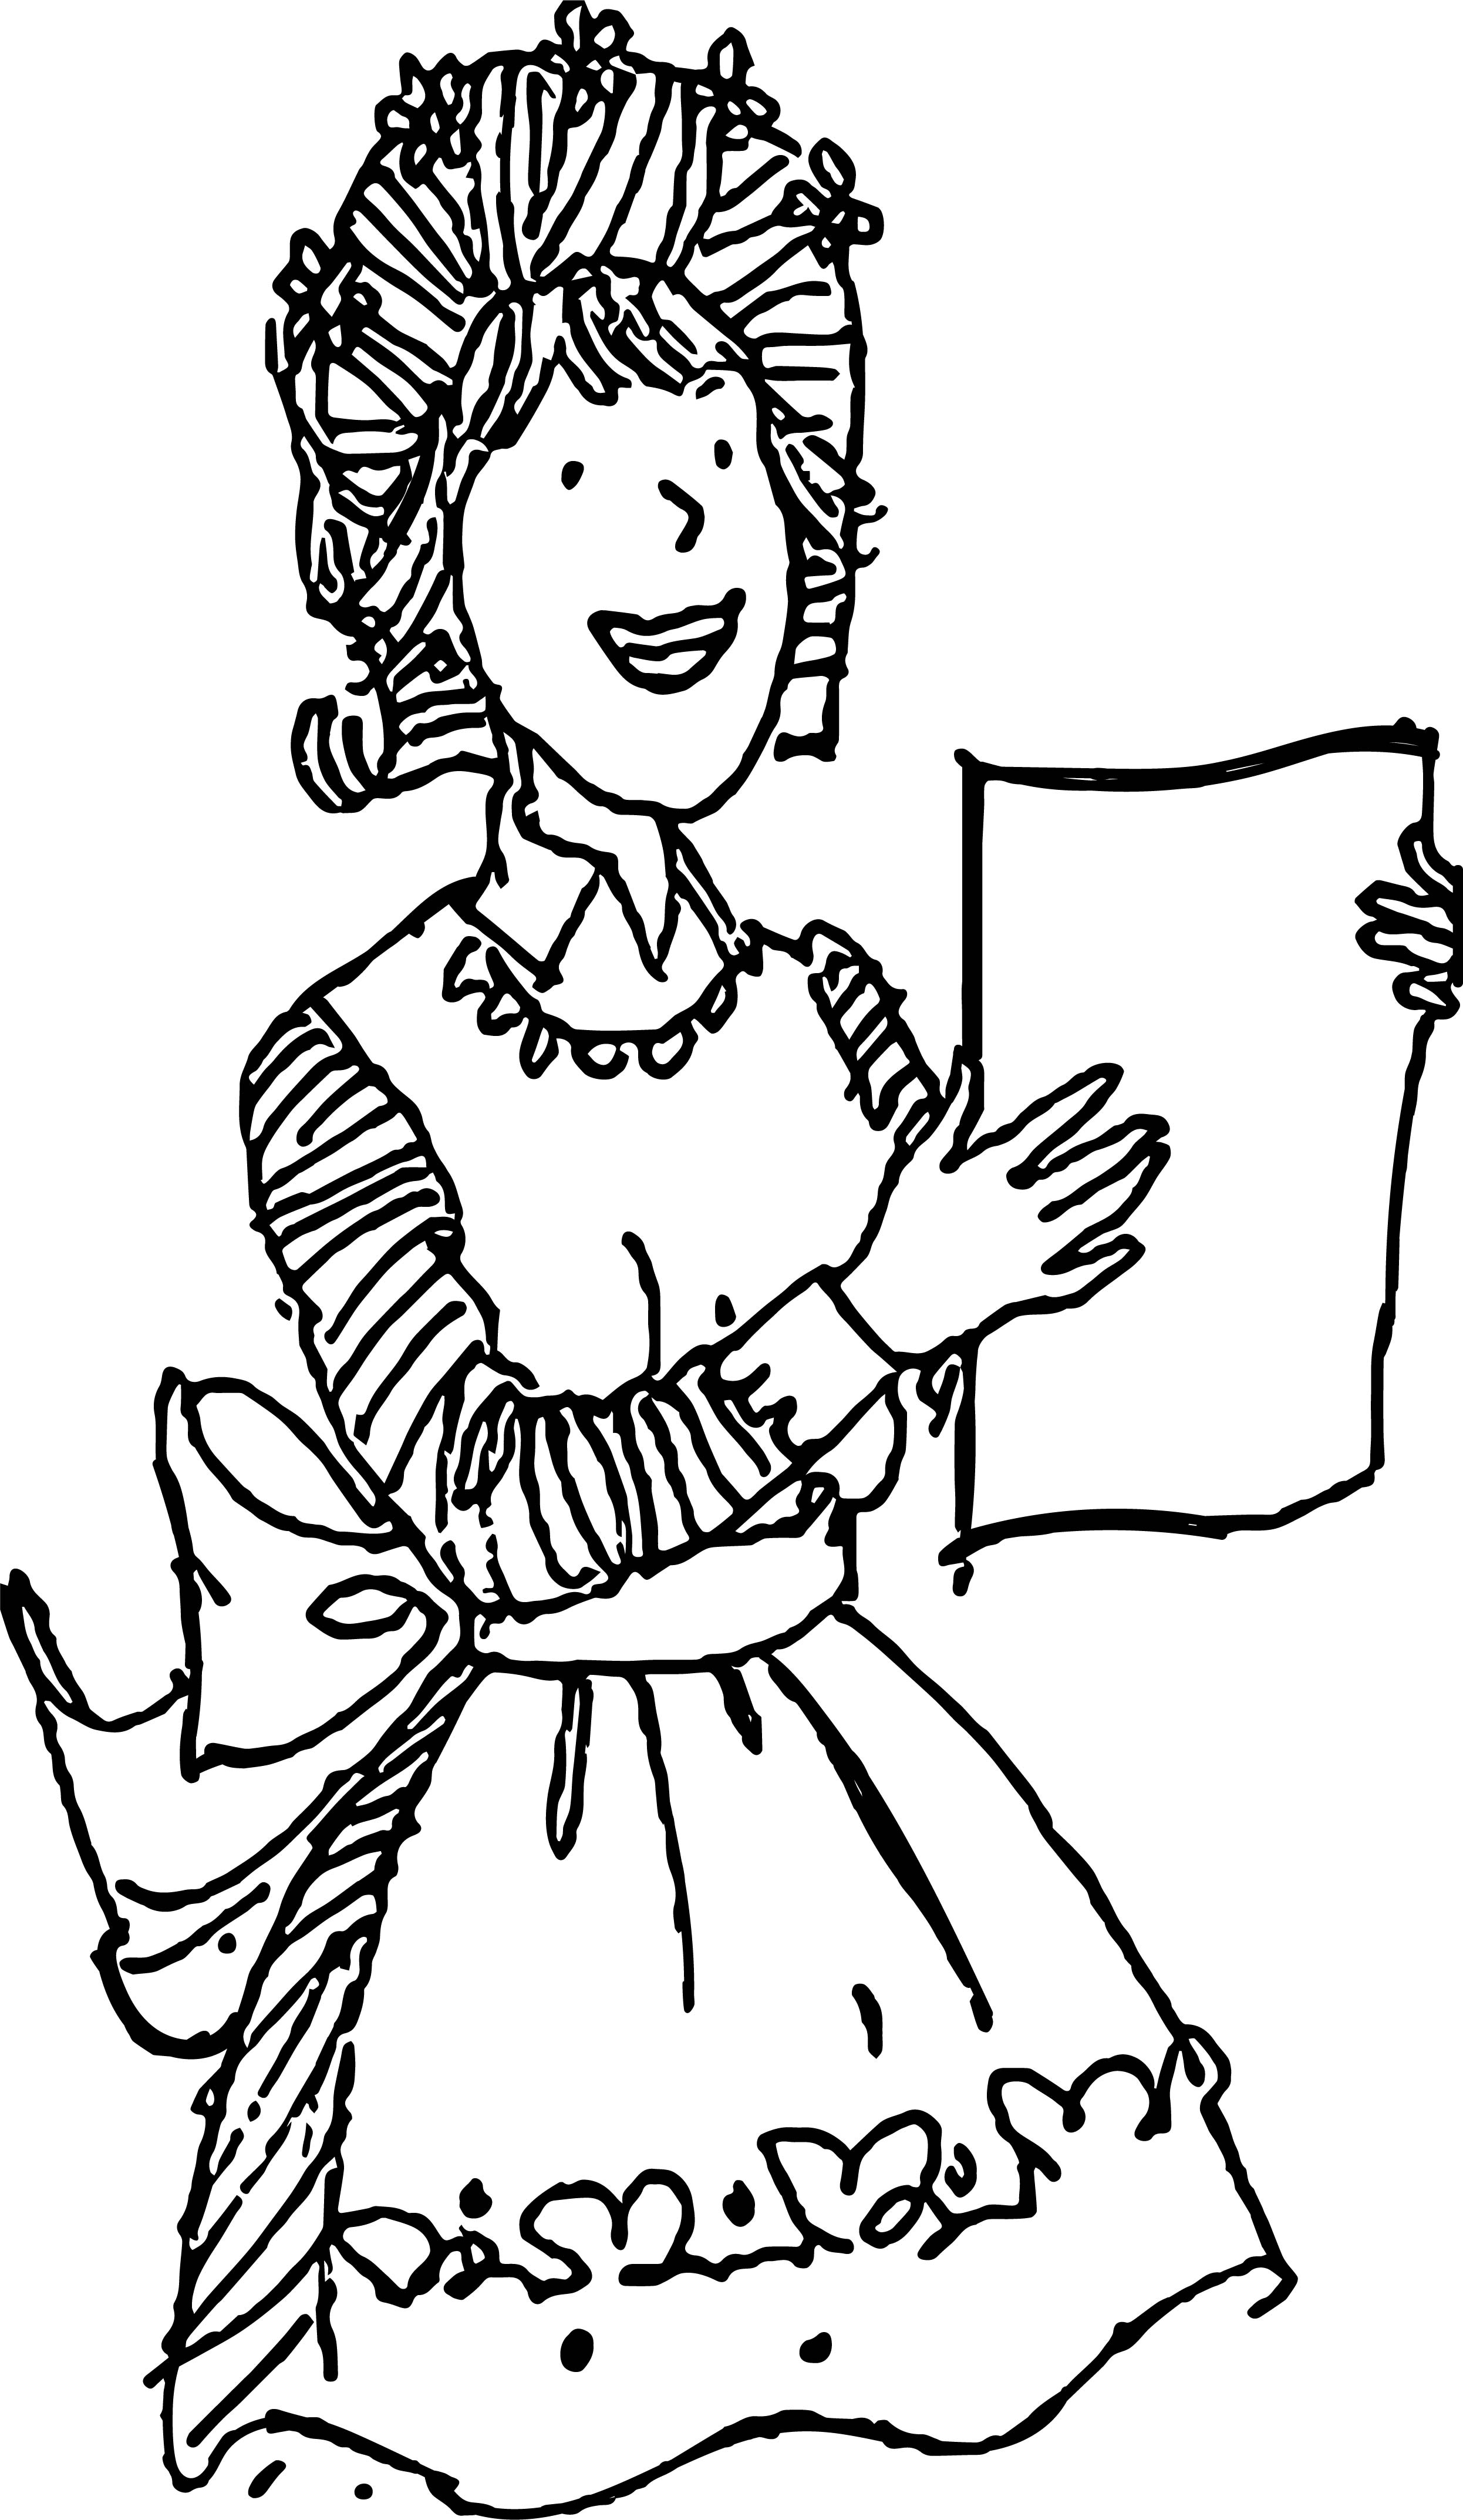 amelia bedelia coloring pages images for adults | Amelia Holding Recipe Coloring Page | Wecoloringpage.com